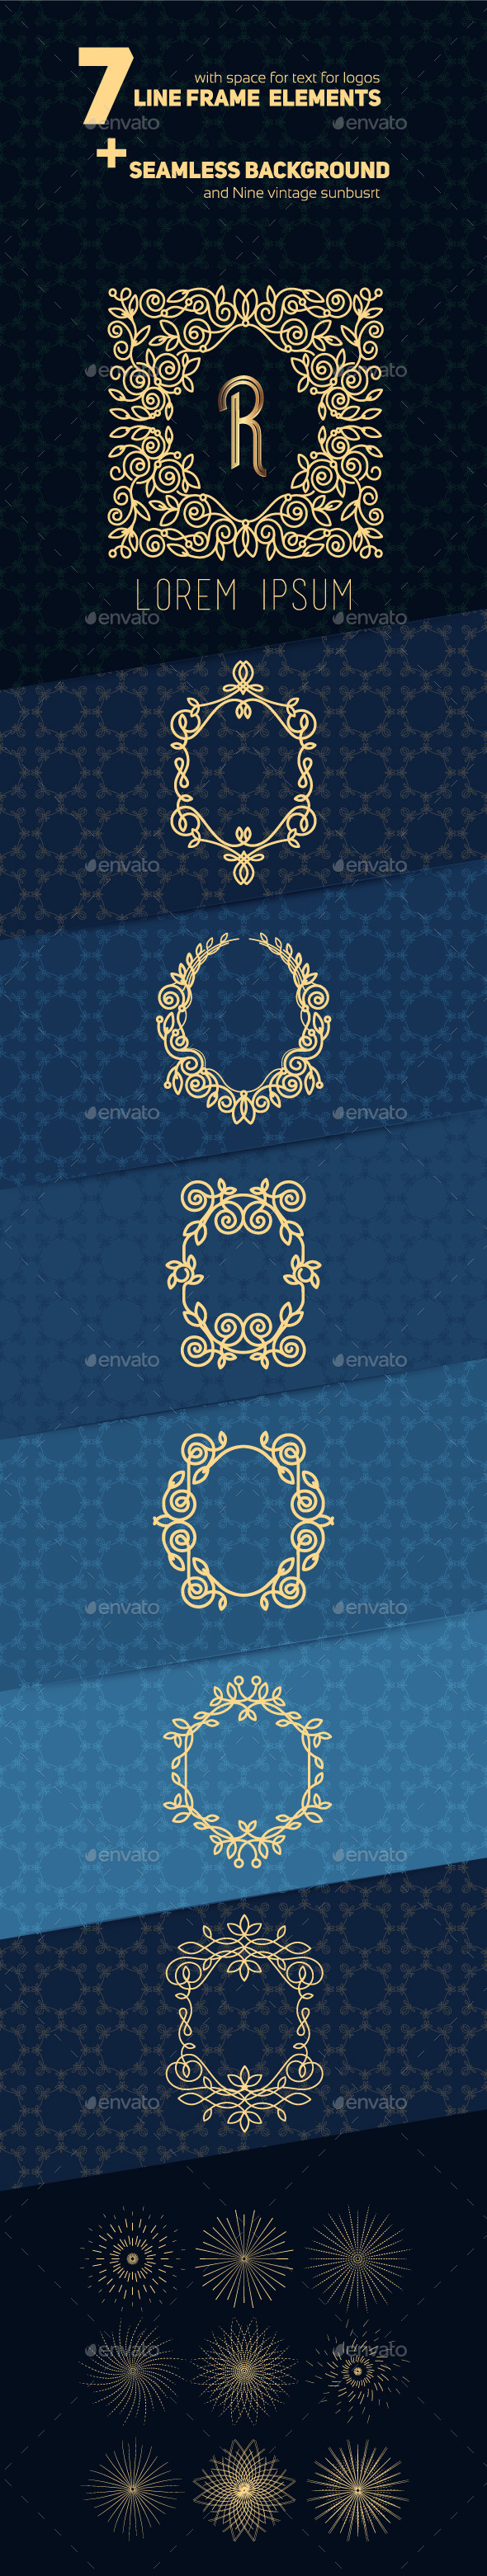 Line Frame Design Elements and Sunbusrt - Decorative Vectors